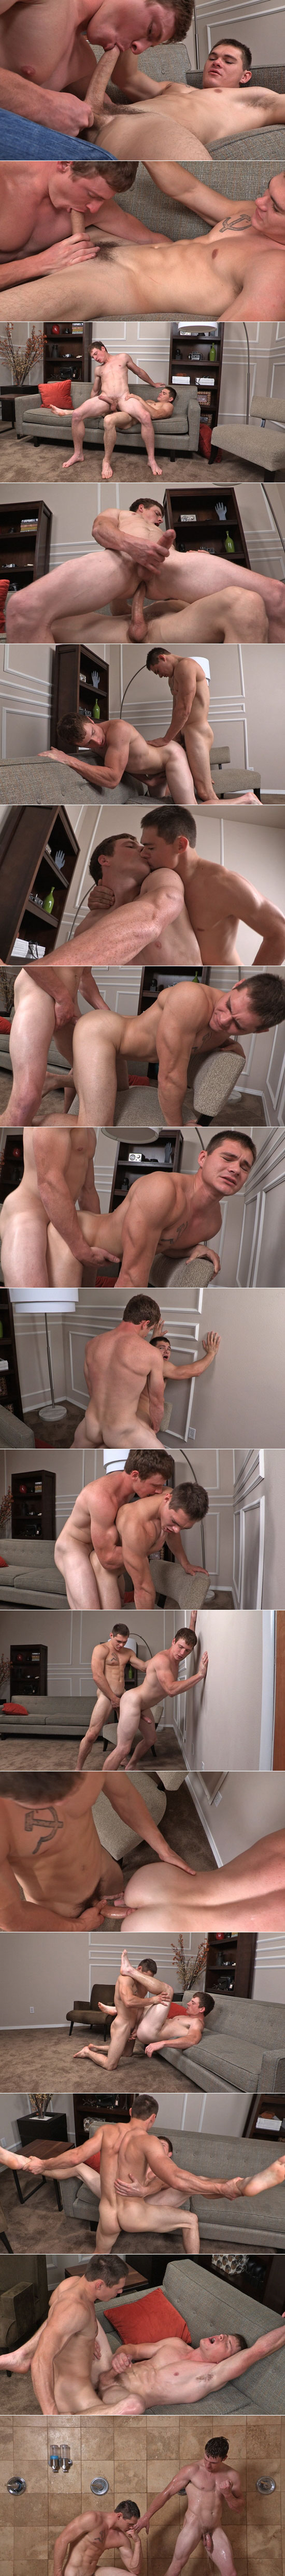 Curtis and Liev fuck bare